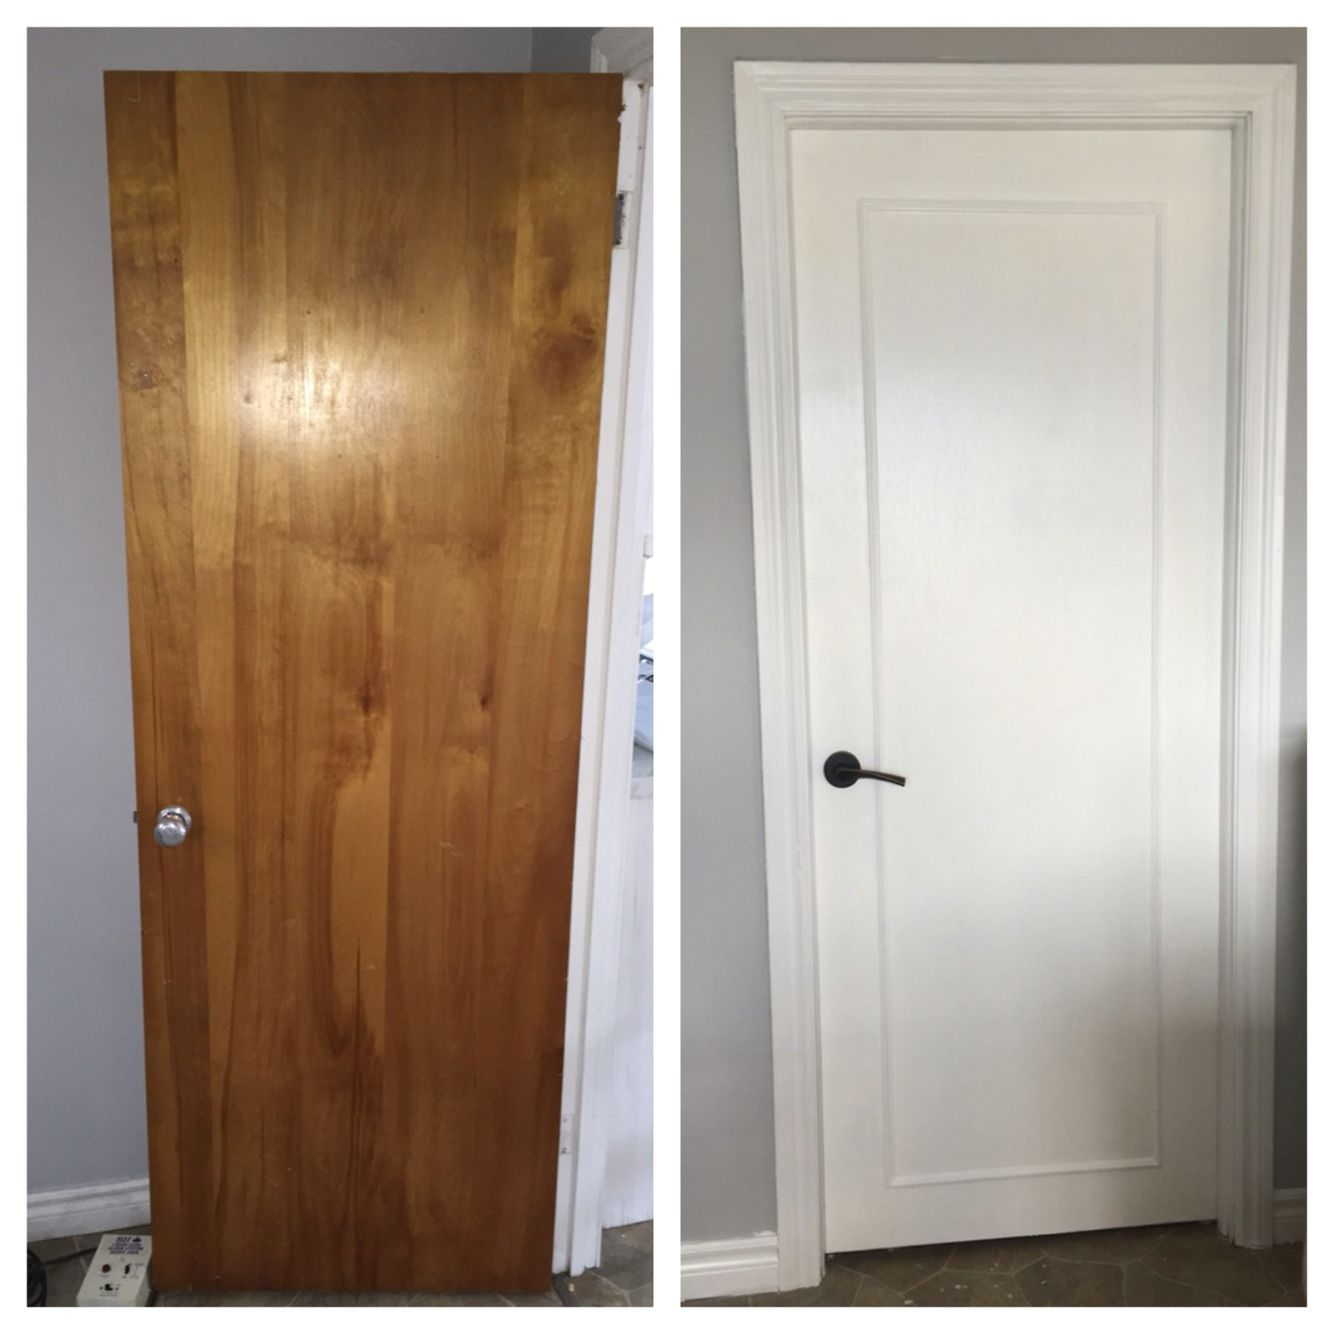 Le Meilleur Updated Old Wood Doors To A Modern Look With Wood Trim Ce Mois Ci